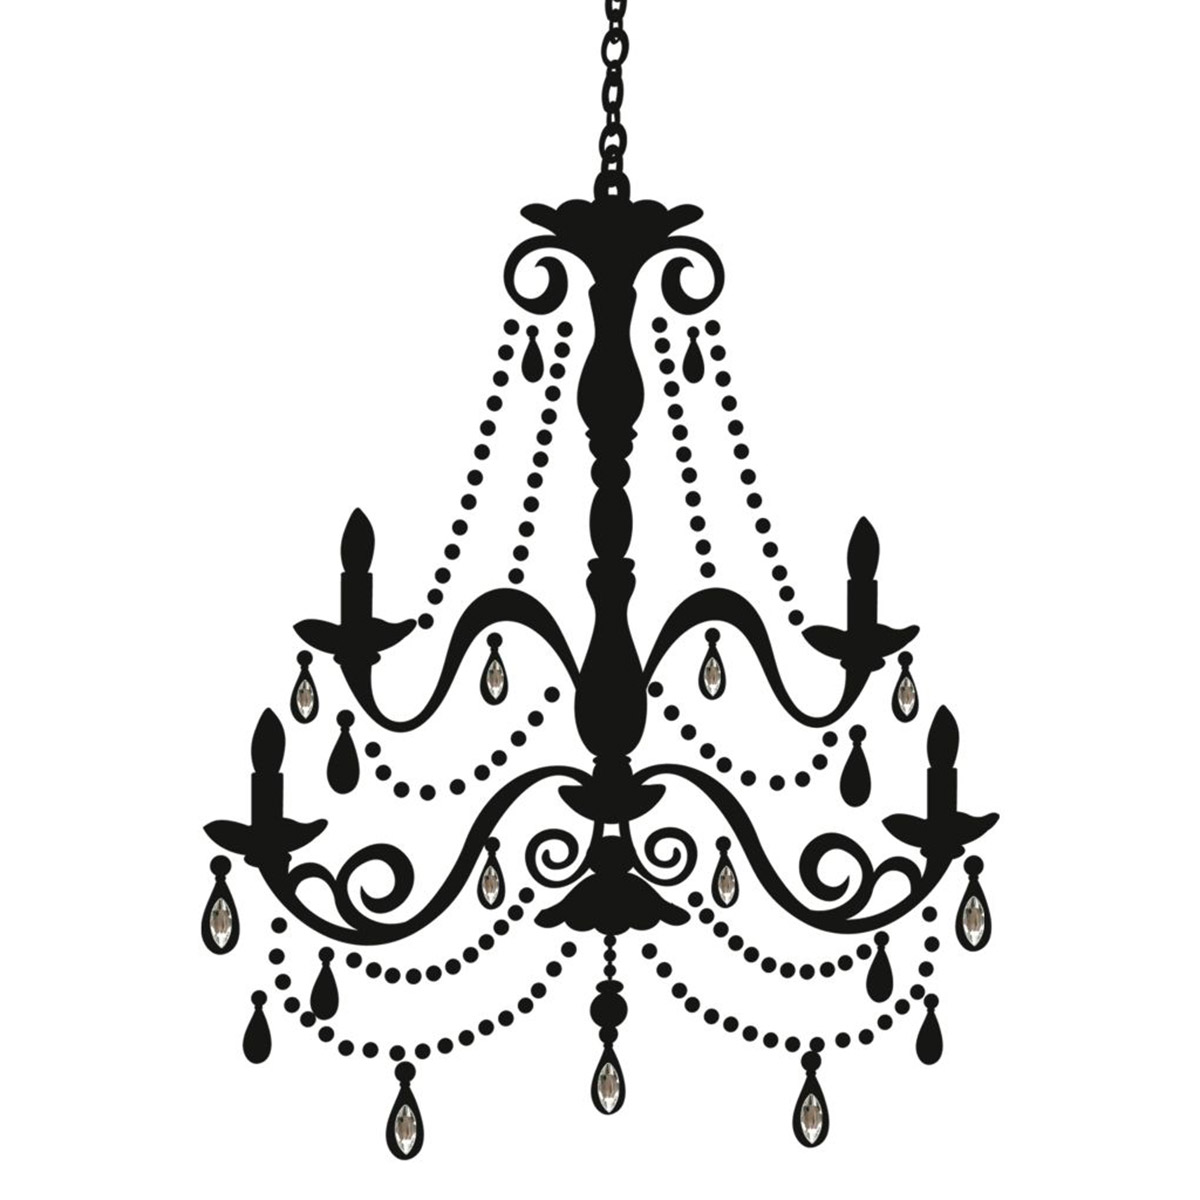 1200x1200 How To Draw A Chandelier Silhouette